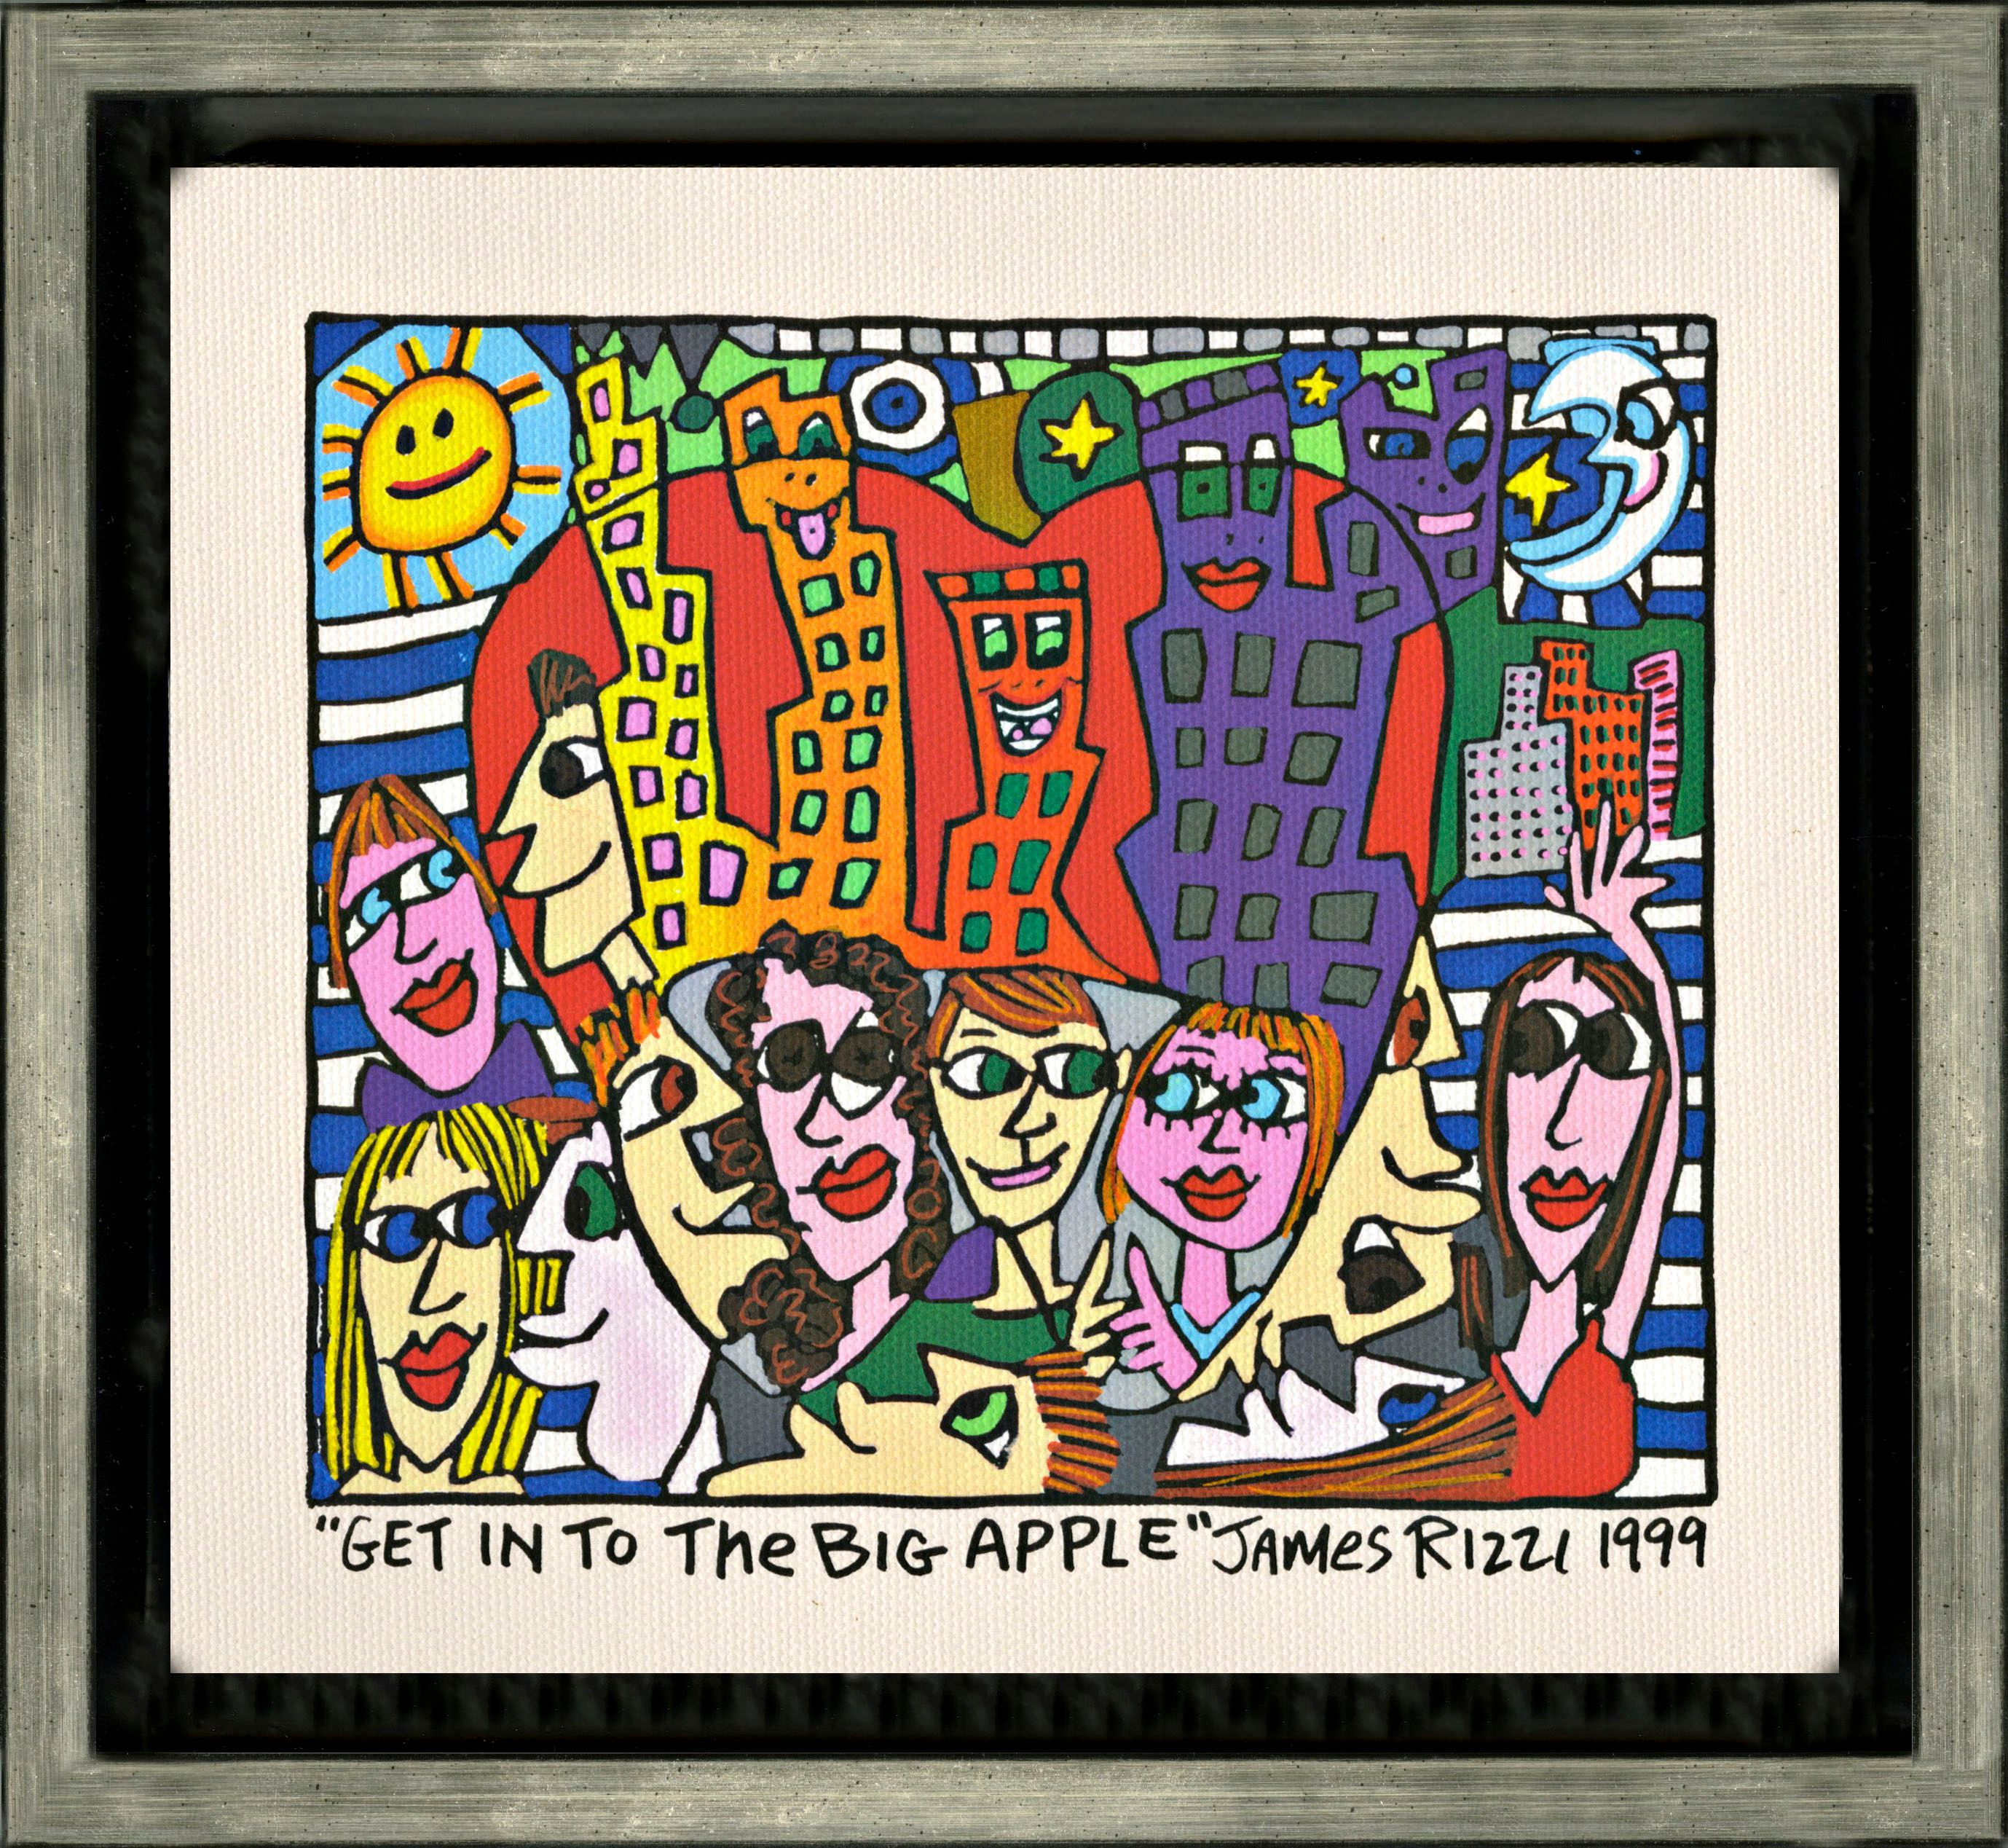 James Rizzi - Get into the big apple